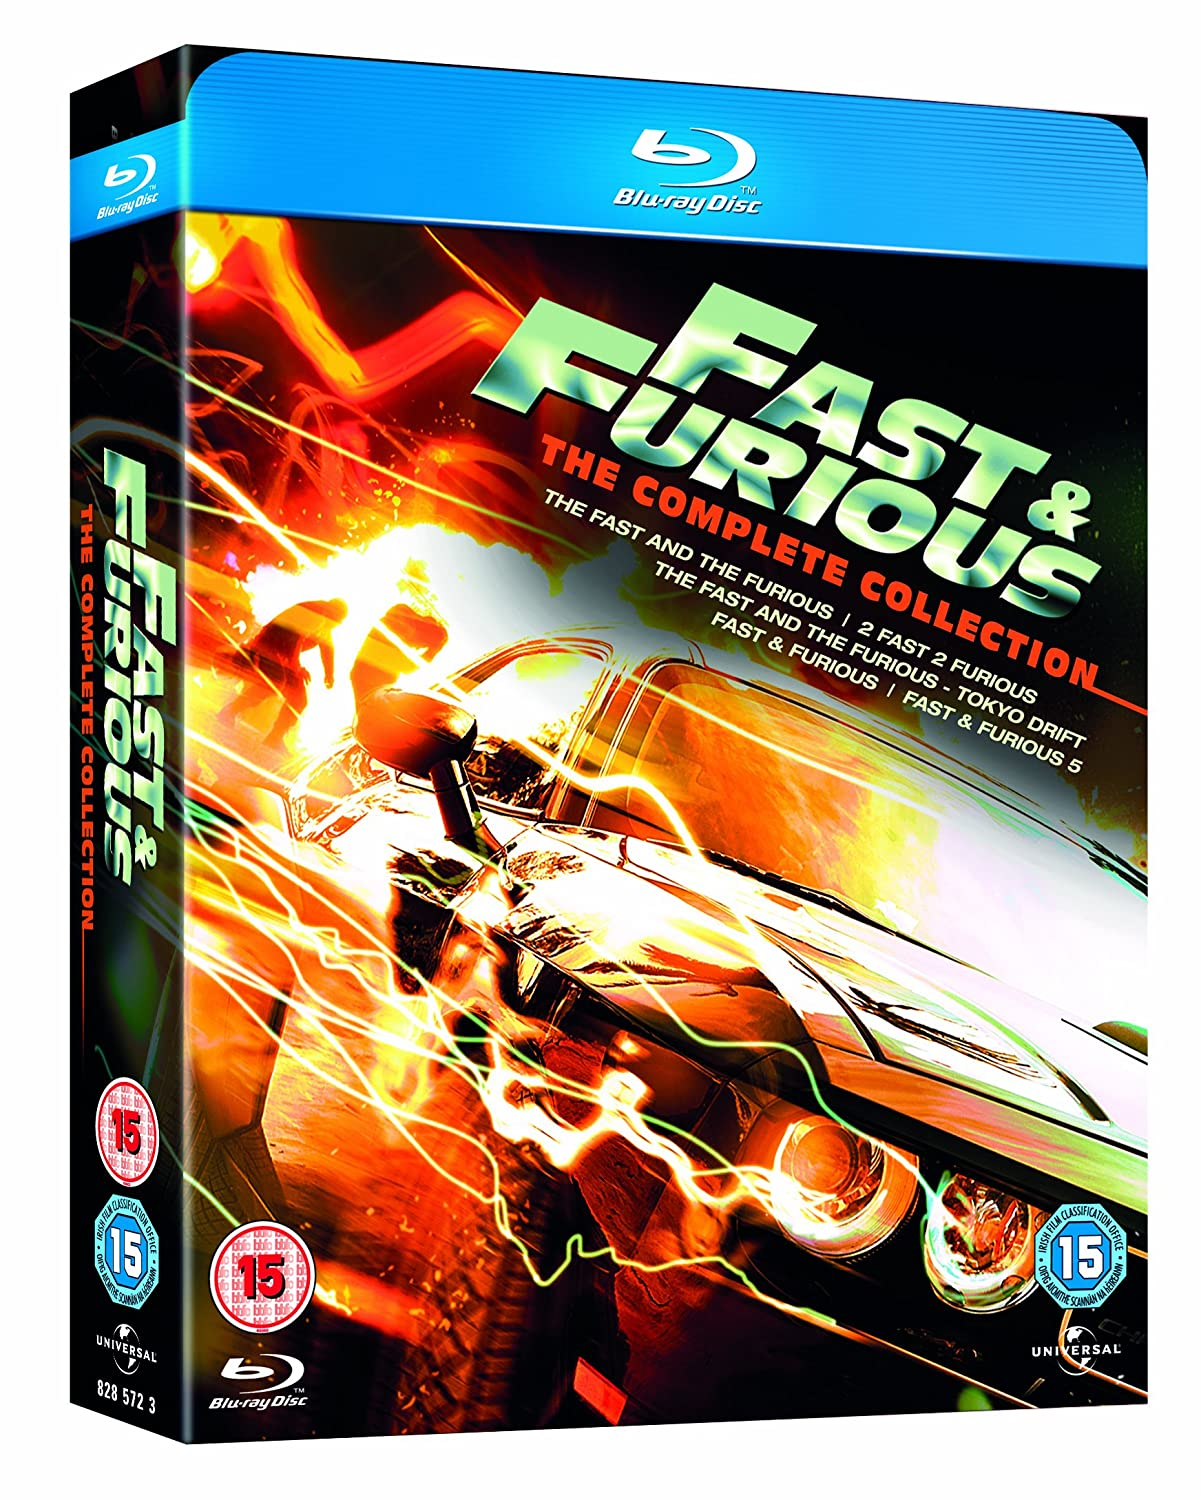 blu ray movie the fast and the furious 1 5 box set all regions ebay. Black Bedroom Furniture Sets. Home Design Ideas